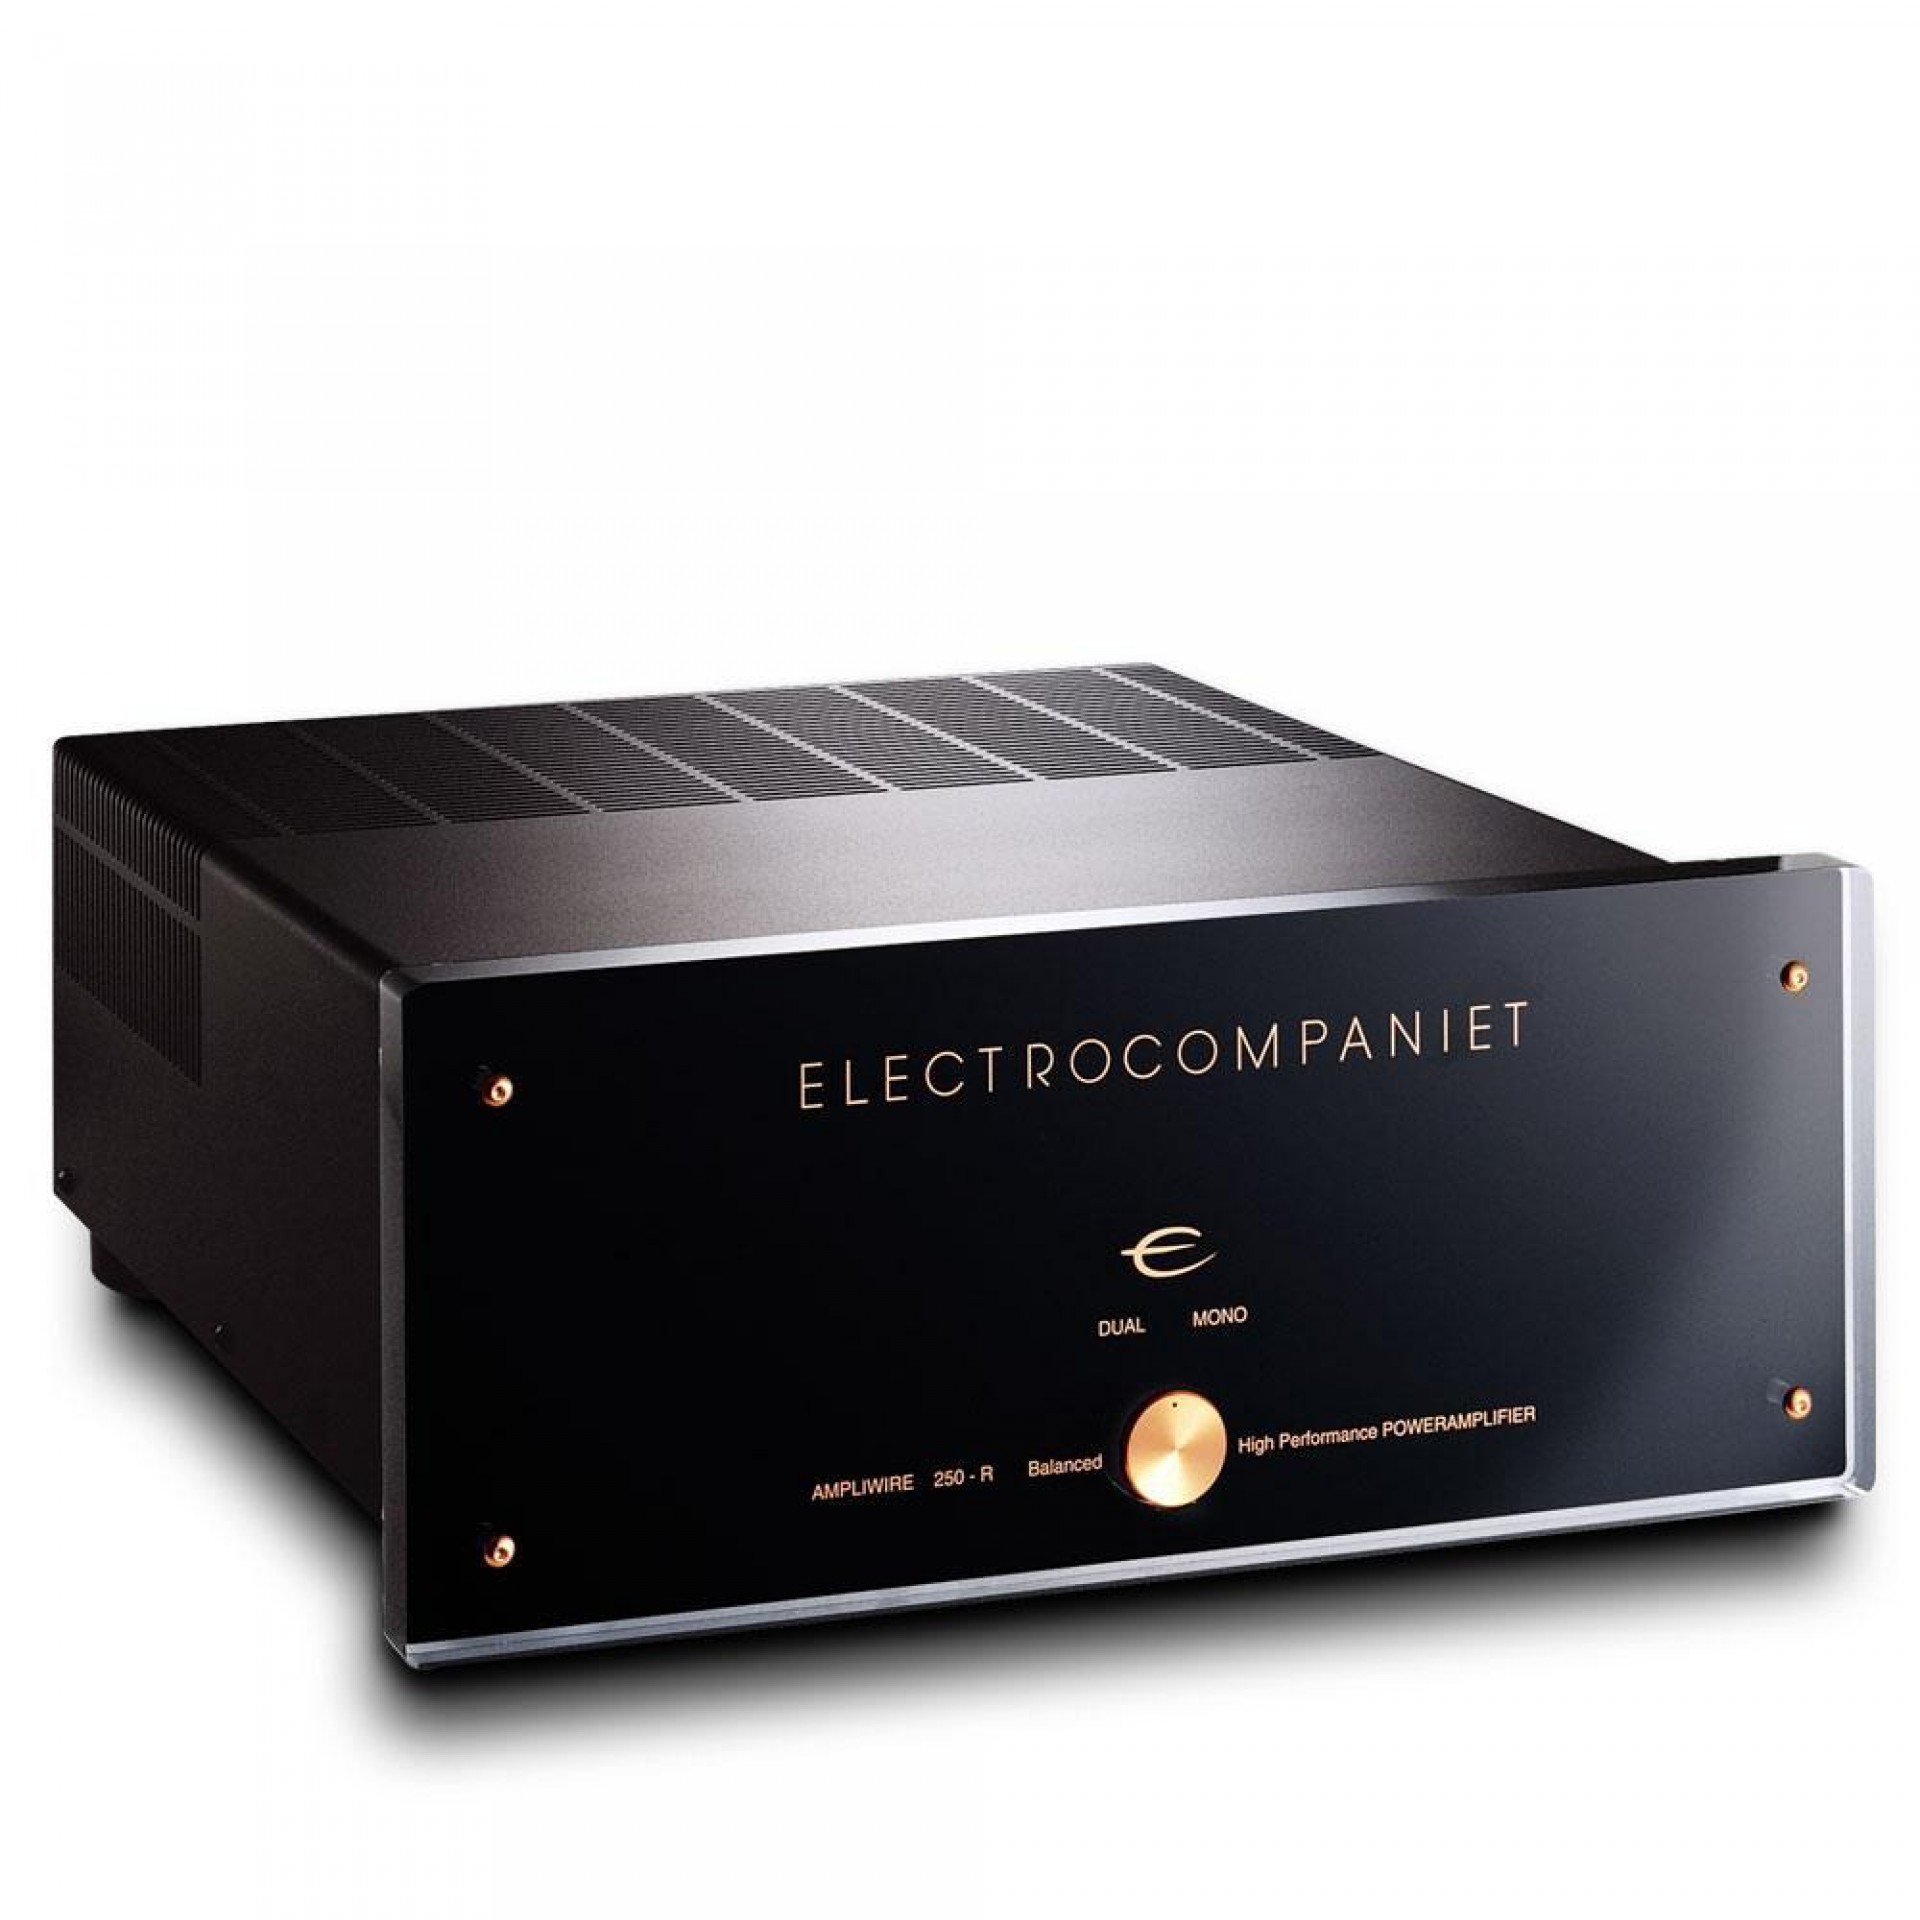 ELECTROCOMPANIET AW 250R 2 Ch Power amplifier